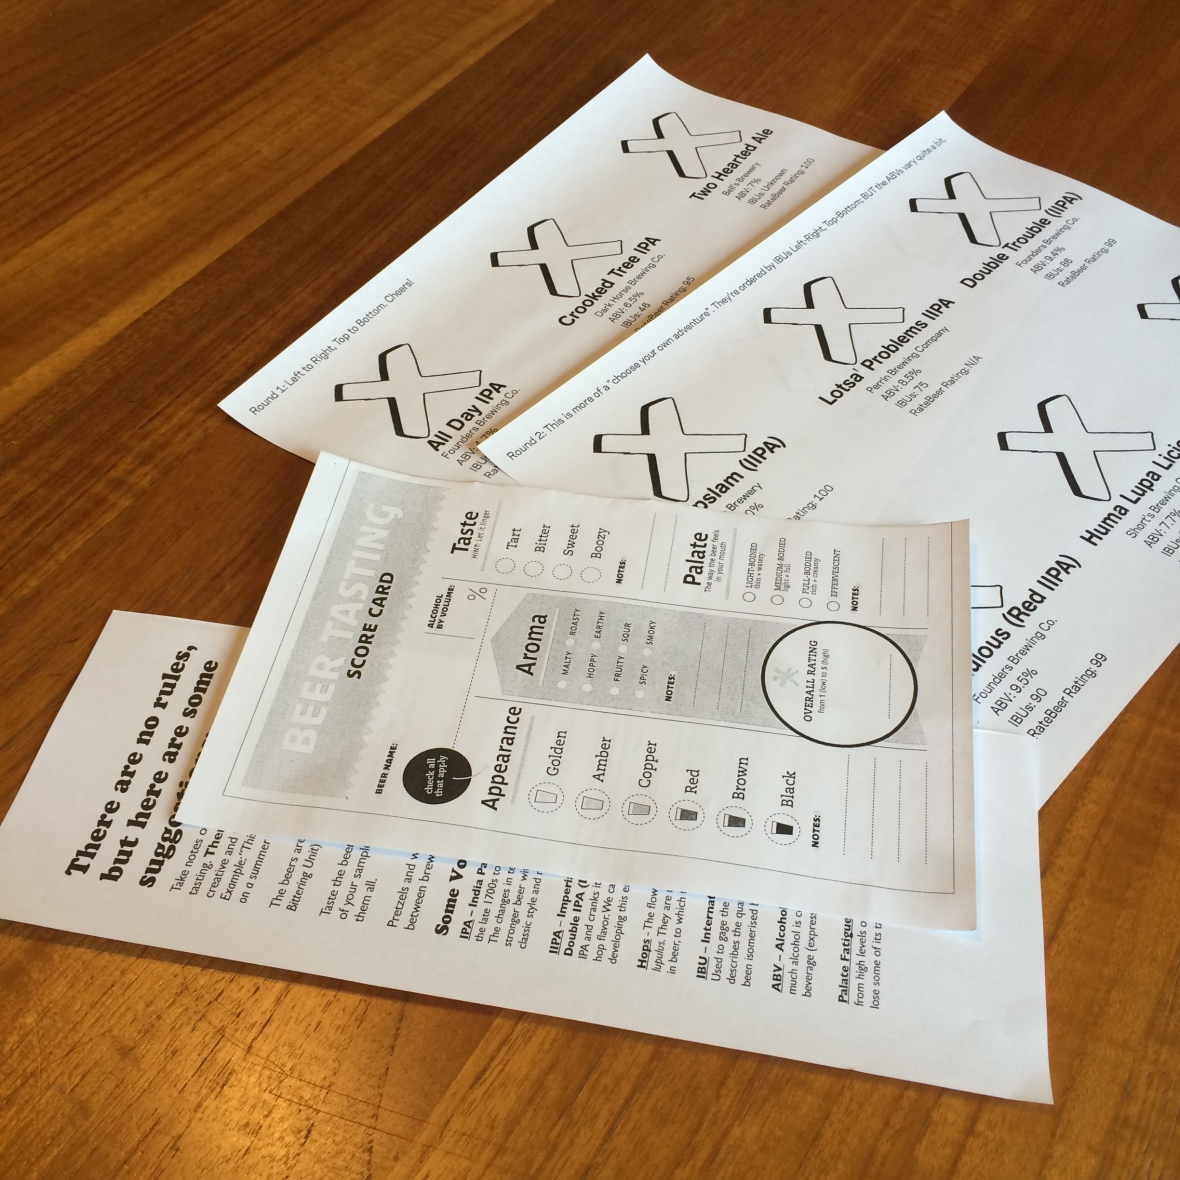 An photo of a beer tasting scorecard, some beer tasting tips, and a mat for beer flights.